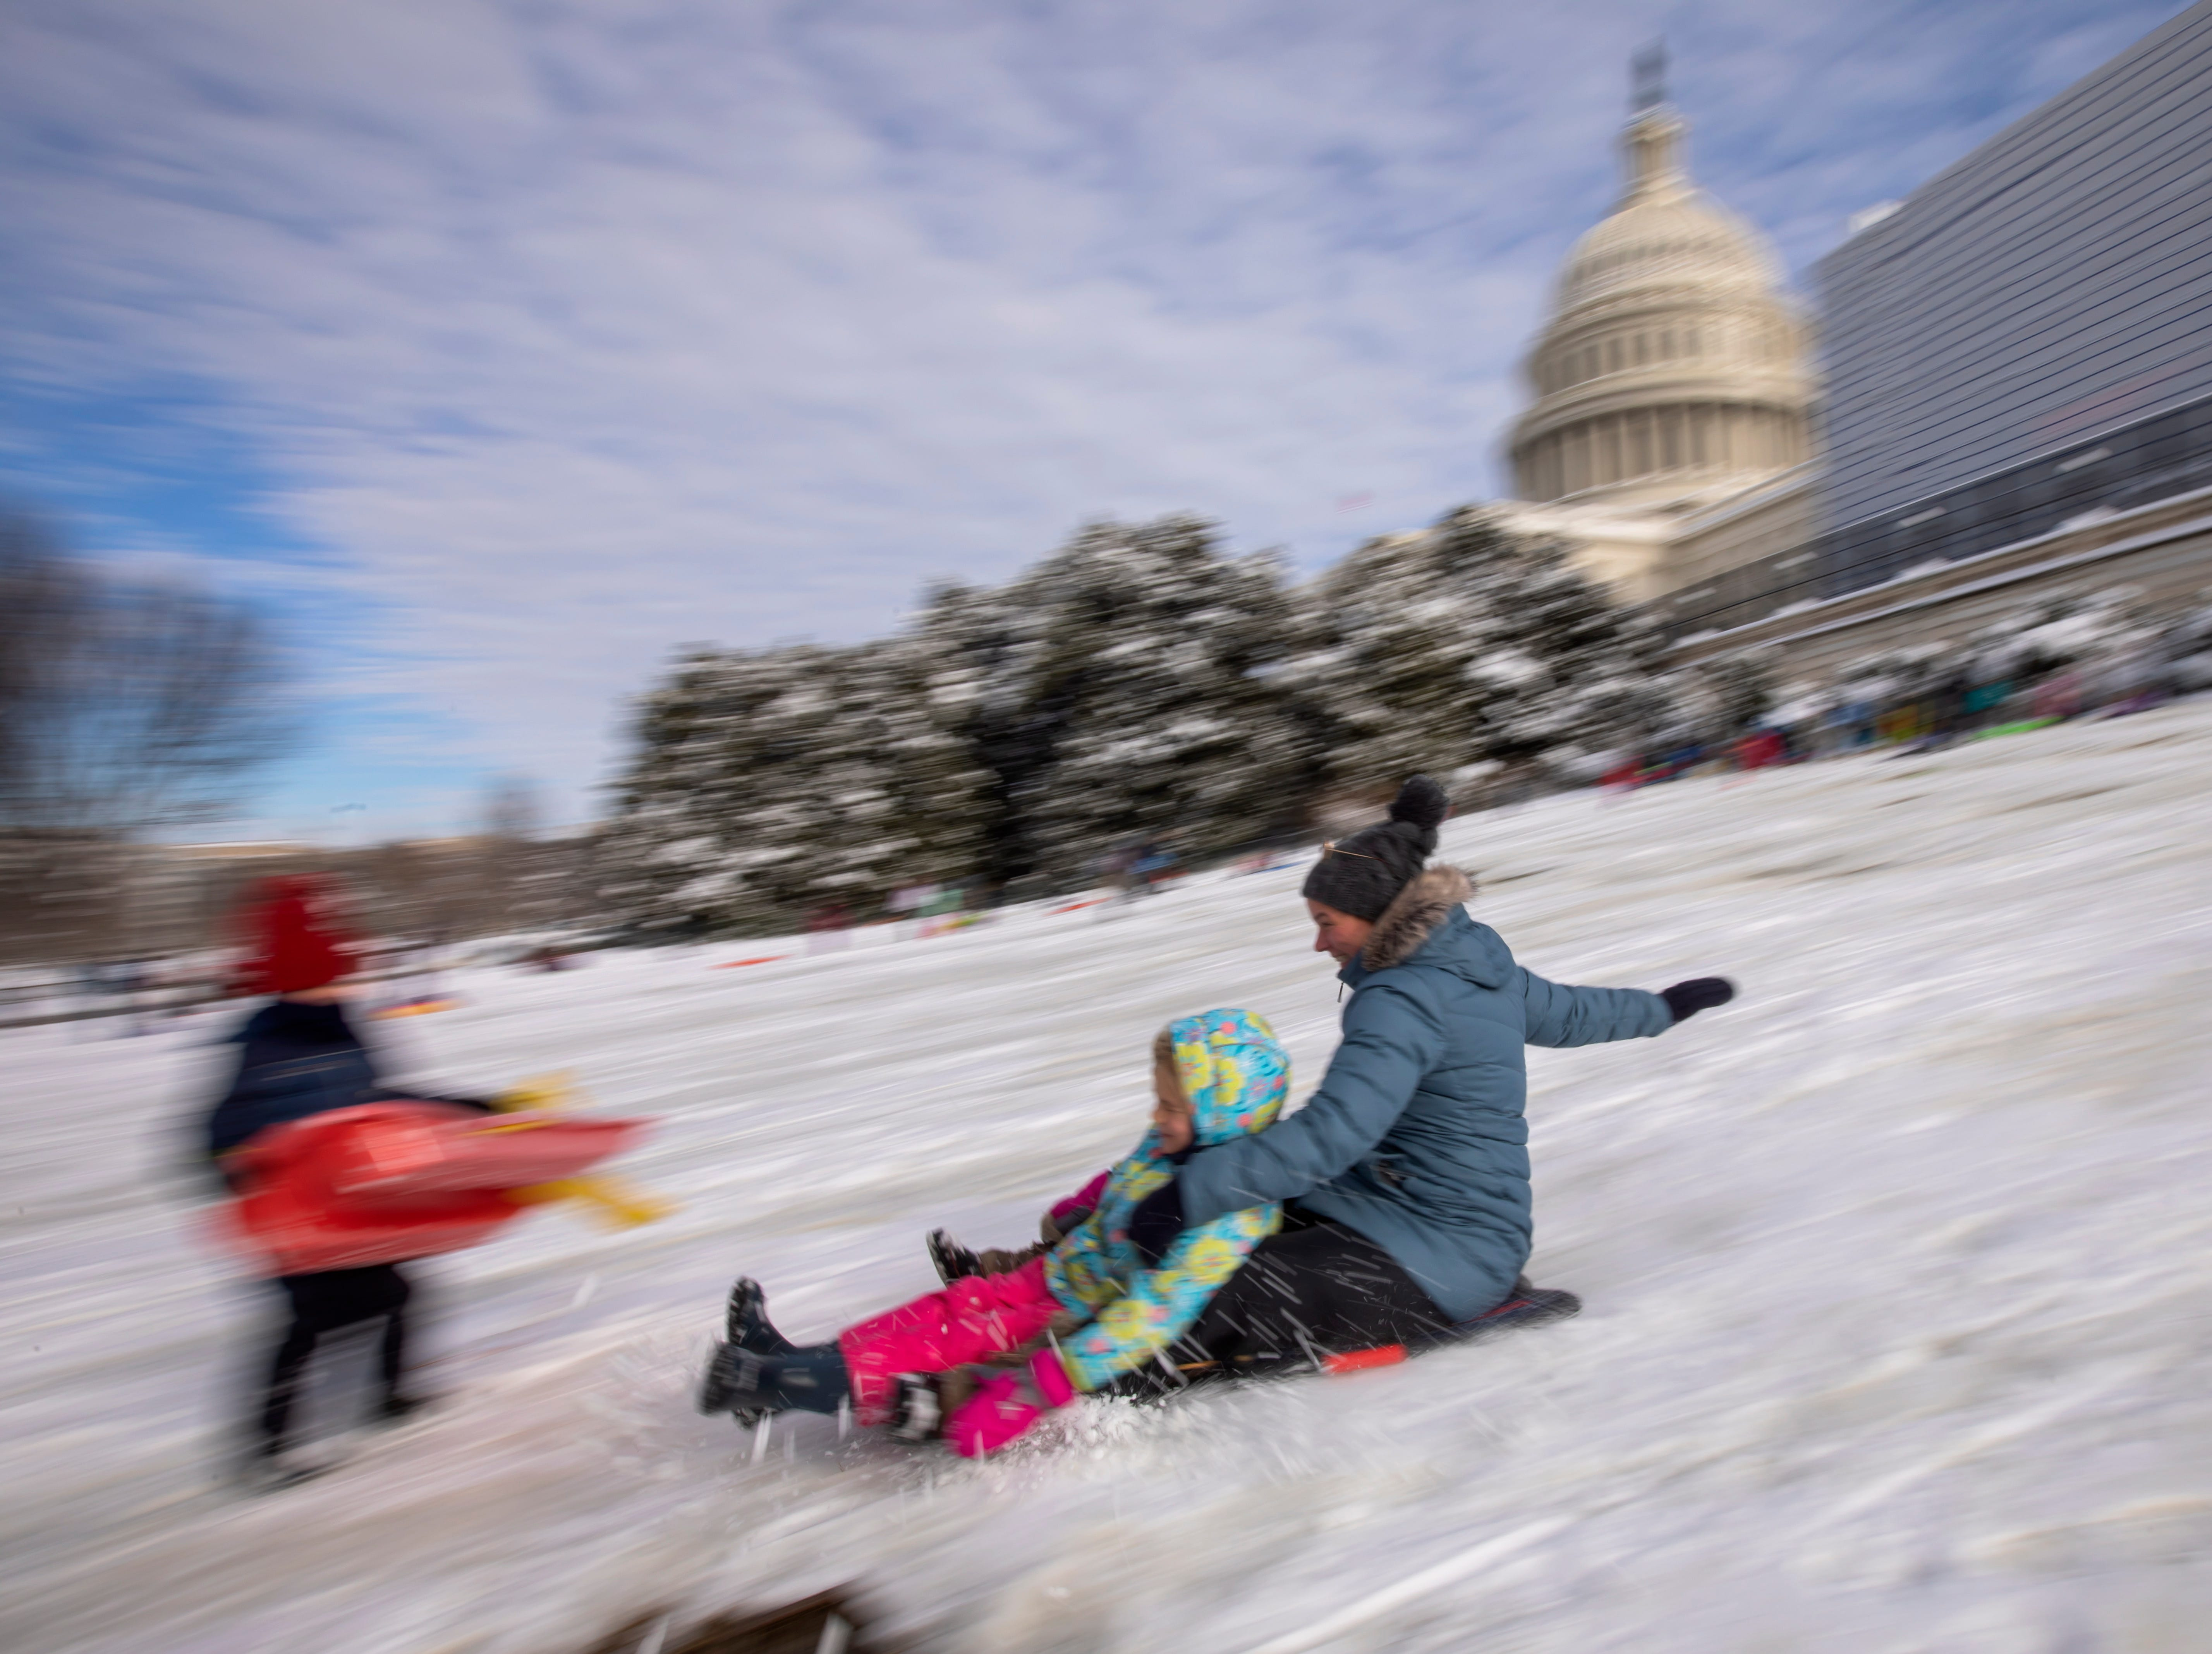 epa07283878 Parents and children slide down on the snow at the West Front of the US Capitol after a weekend winter storm in Washington, DC, USA, 14 January 2019. Washington, DC, recorded more than 27 centimeters of snow according to the US National Weather Service. The weather forced the closure of many school systems and most government offices.  EPA-EFE/ERIK S. LESSER